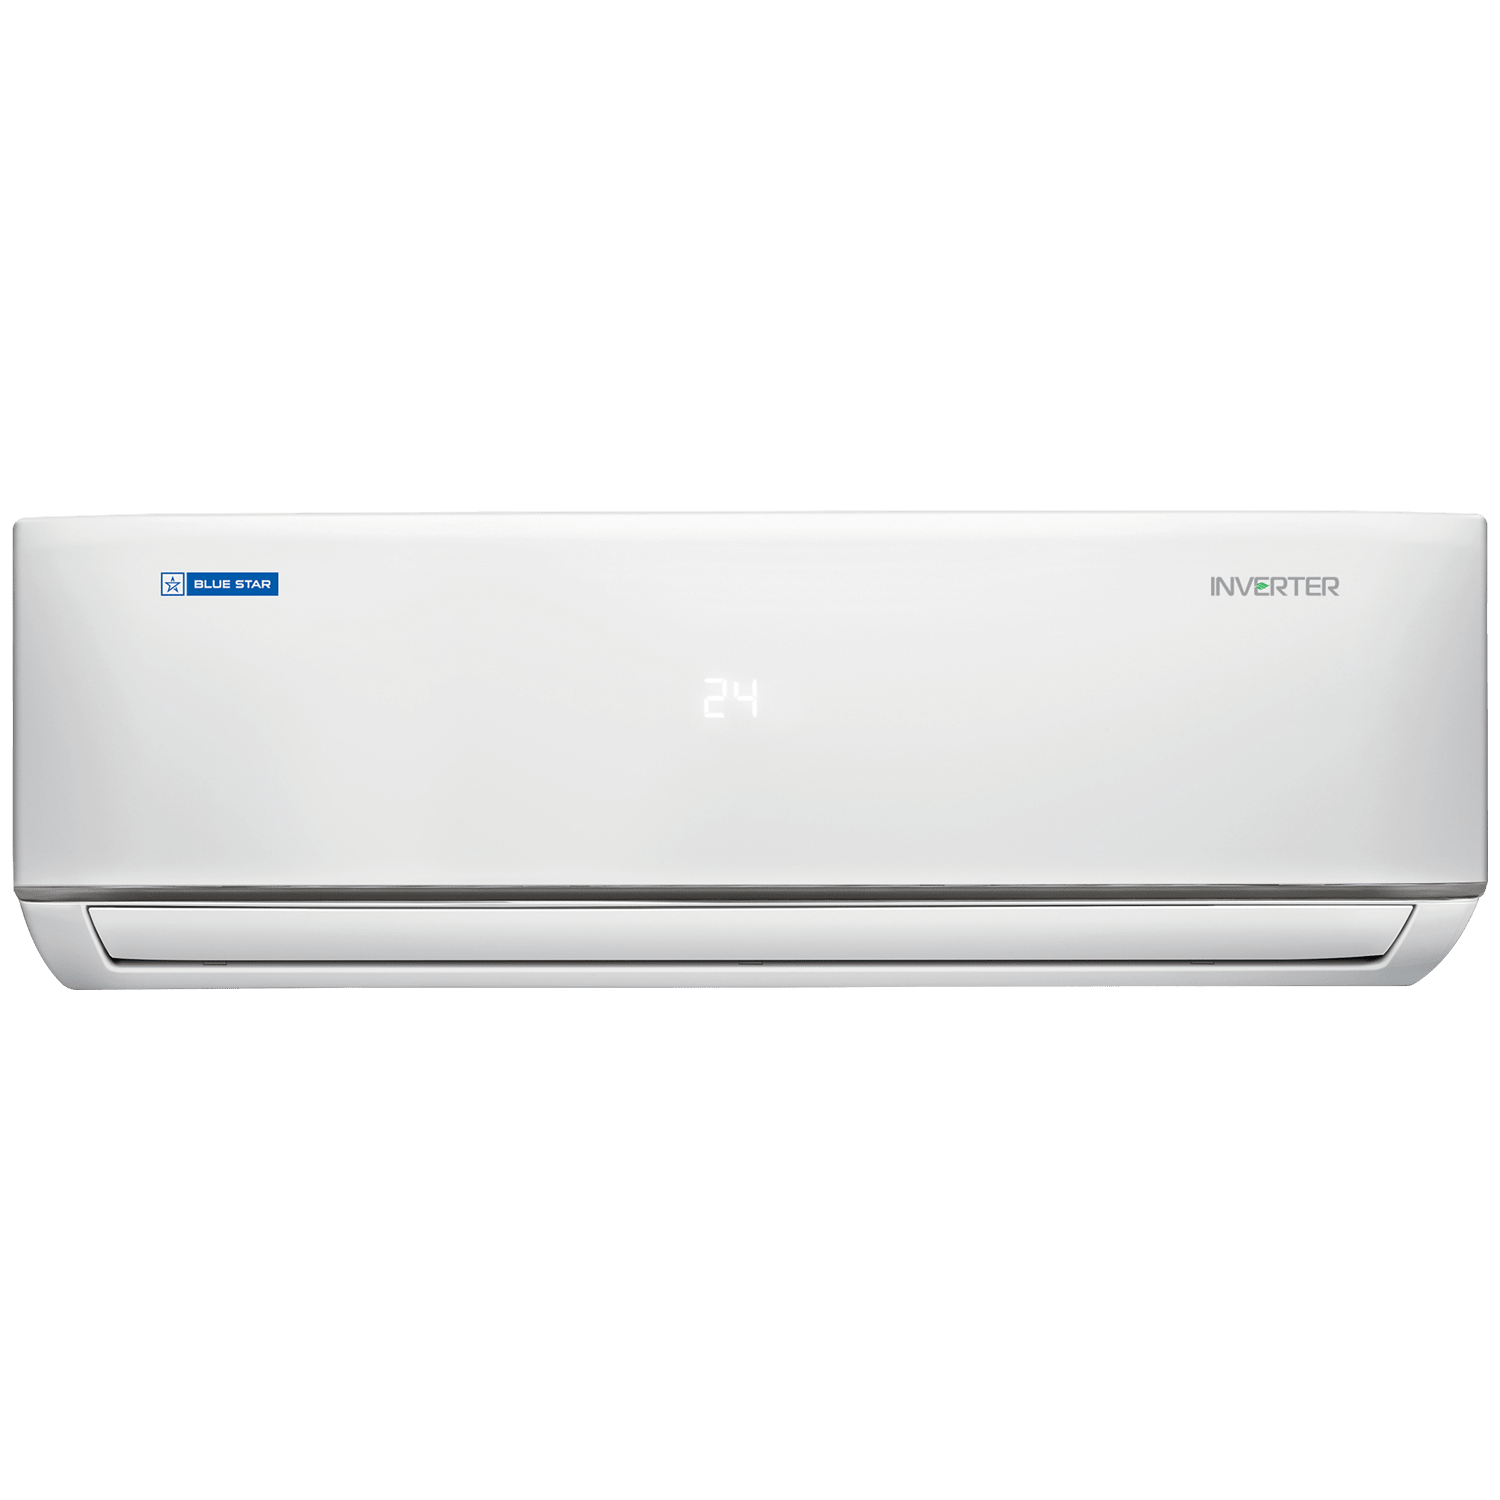 Blue Star DL LV 1.5 Ton 5 Star Inverter Split AC (Air Purification Function, Copper Condenser, IC518DLTULV, White)